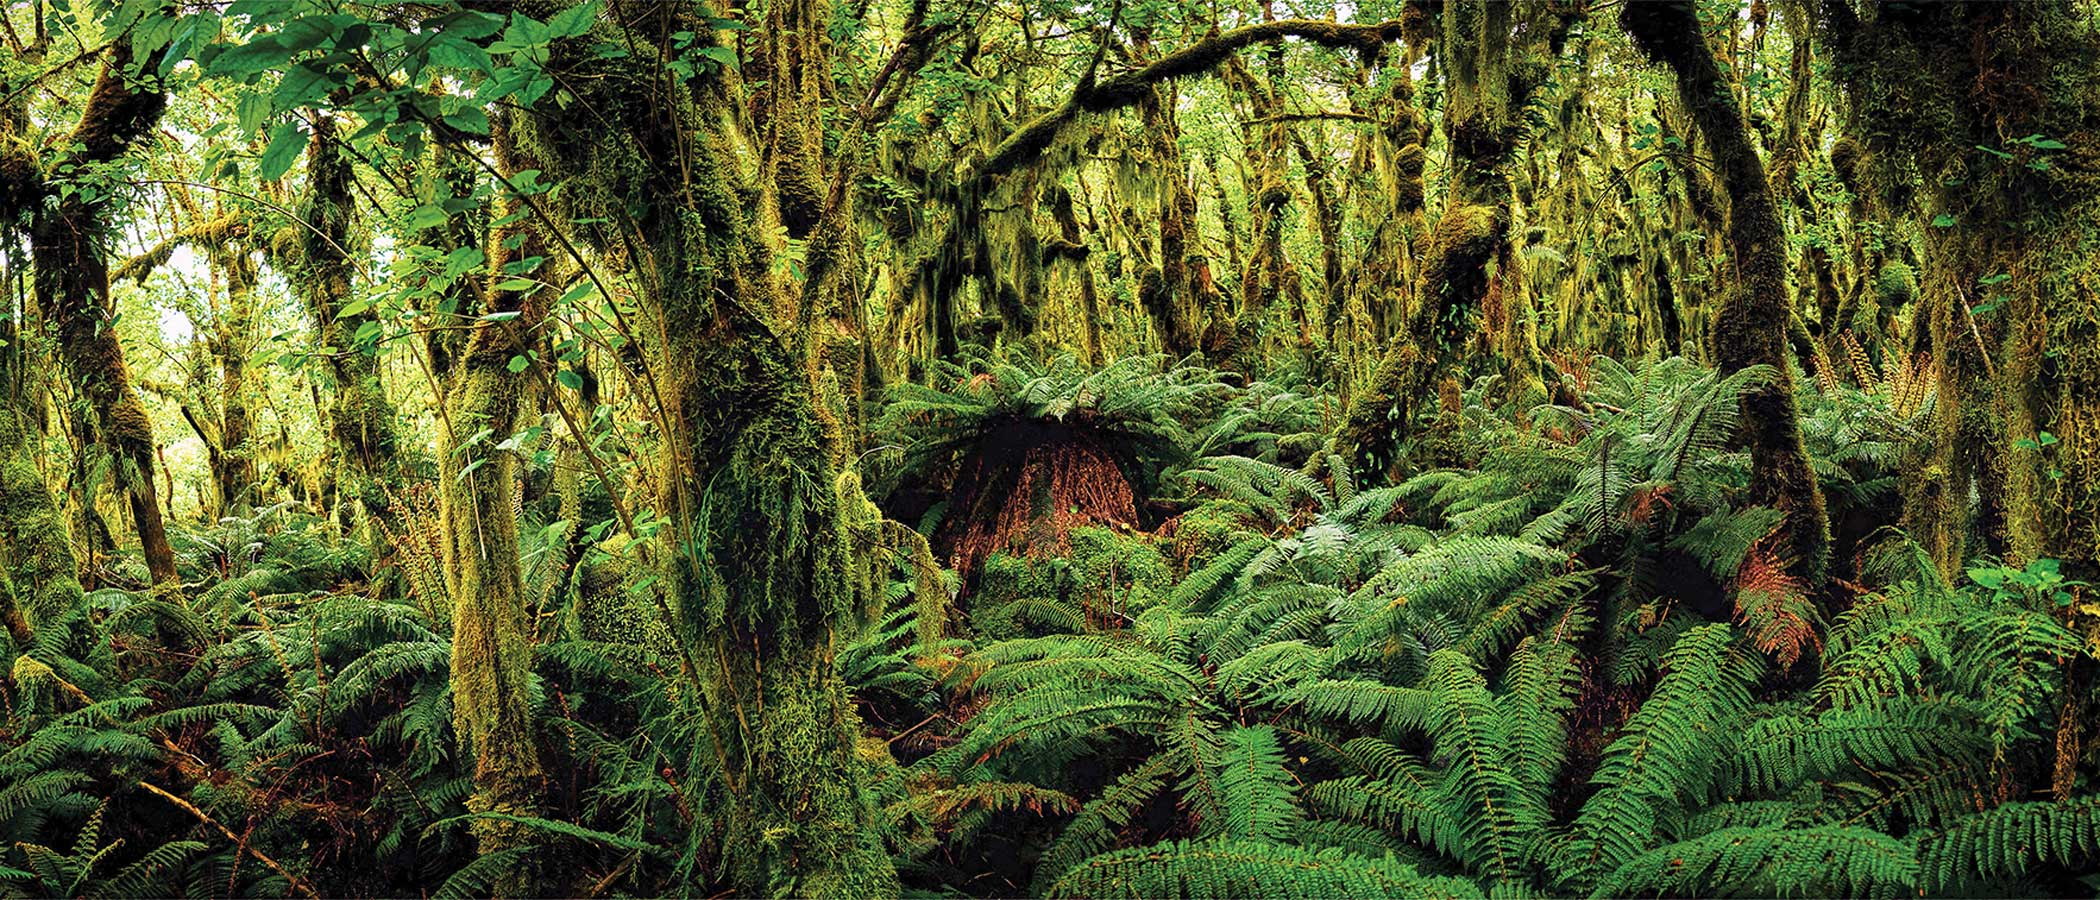 Moss, fern, and southern beech trees in Fiordland National Park on the South Island of New Zealand.